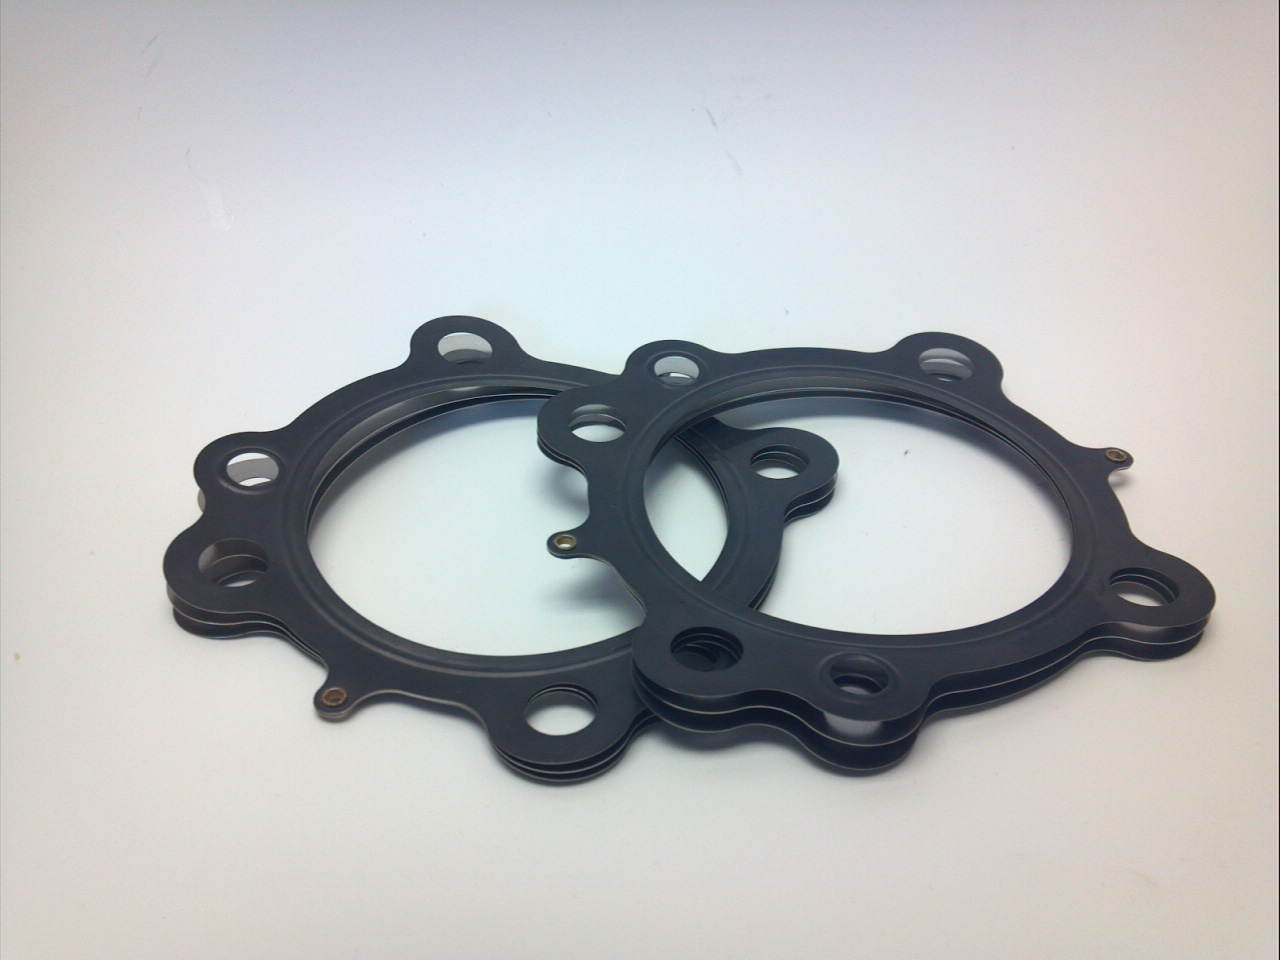 3.8125 EVOLUTION HEAD GASKET